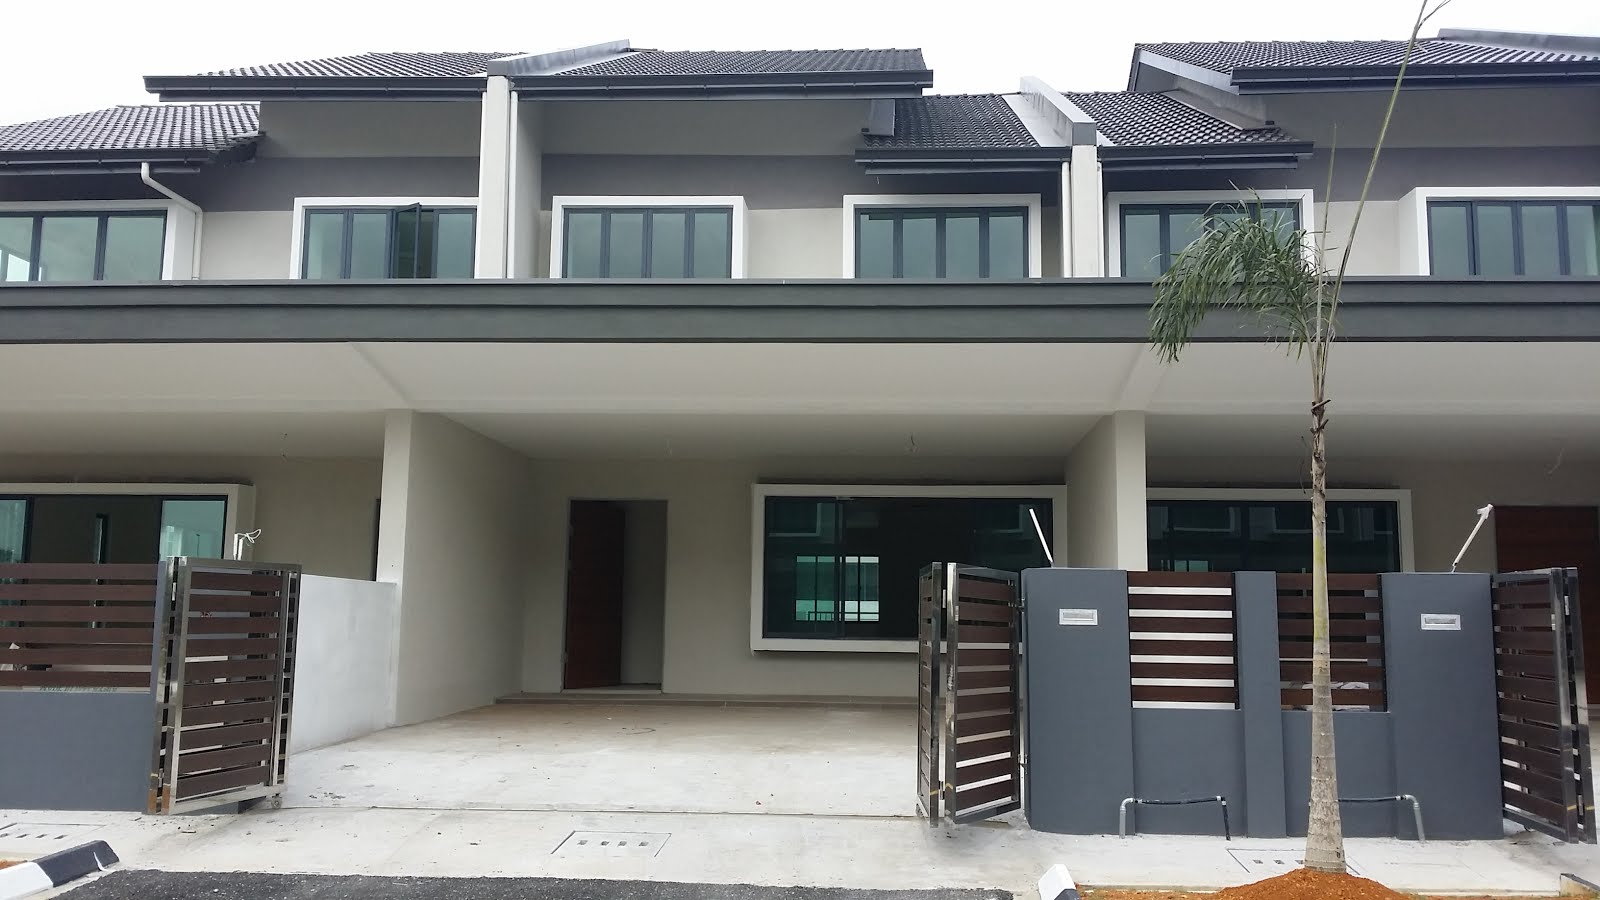 Best Kitchen Gallery: Kuching Property And Real Estate Sold New Double Storey Terrace of New House Sale on rachelxblog.com